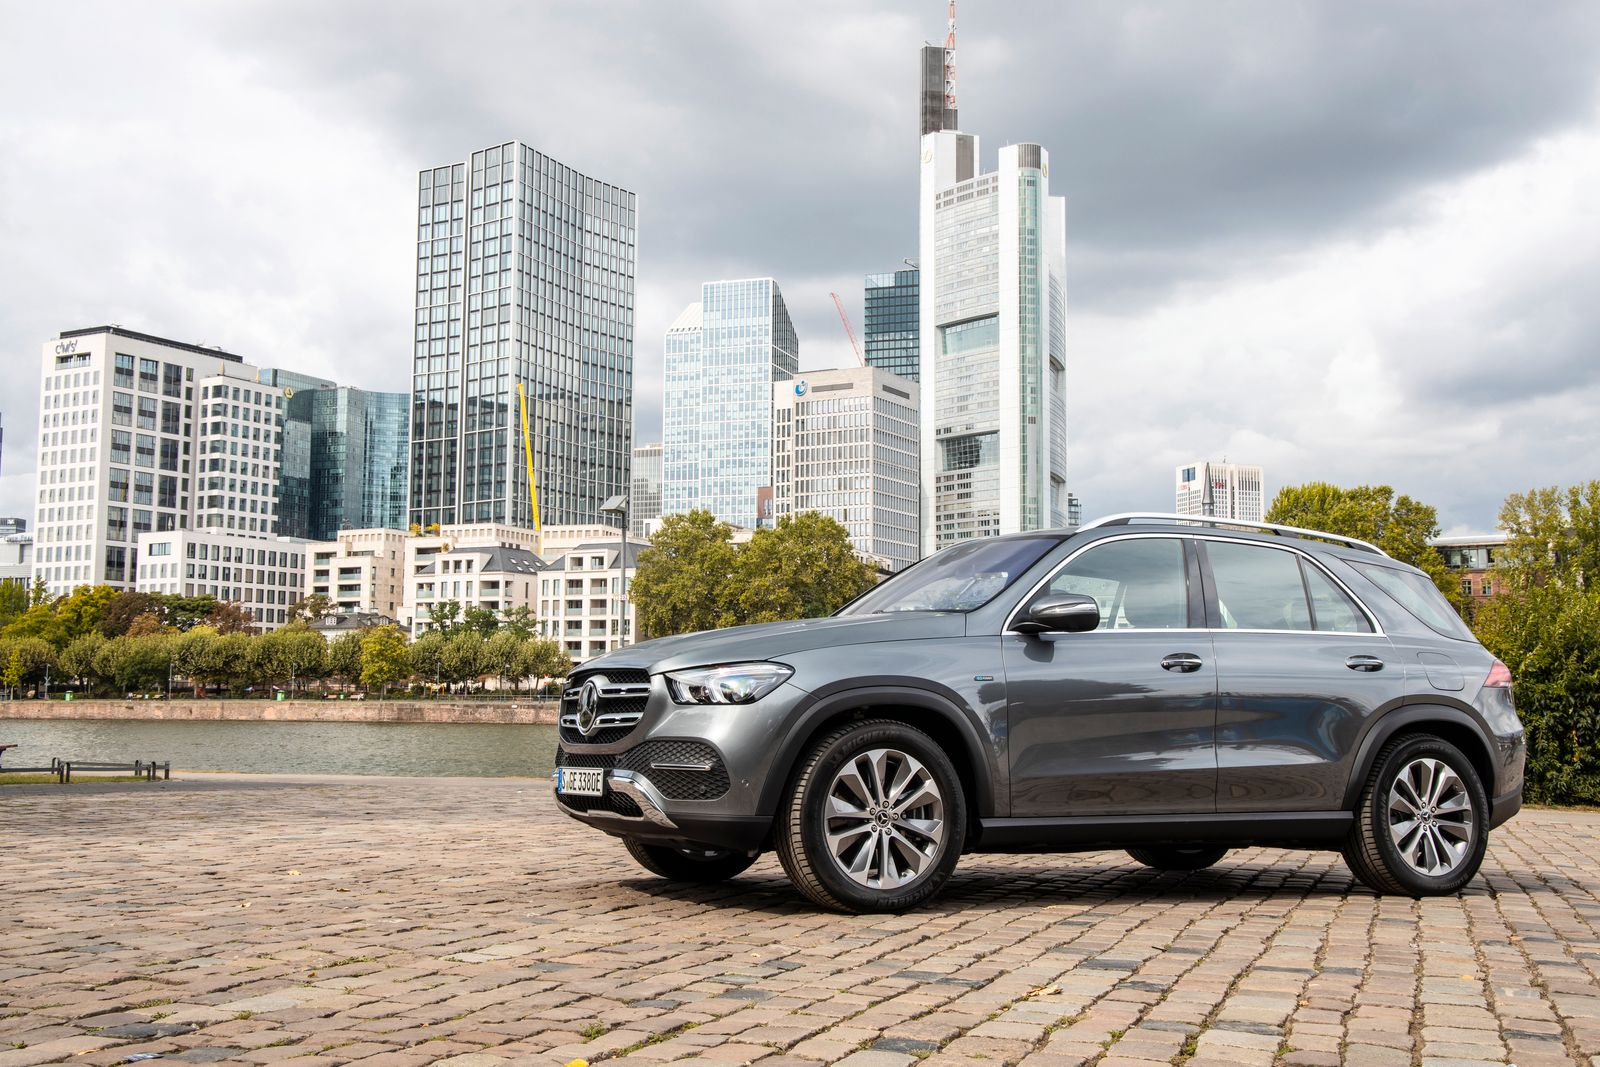 Mercedes-Benz Plug-in hybrids - The New EQ Power Family Frankfurt, September 2019 Mercedes-Benz Plug-in hybrids - The New EQ Power Family Frankfurt, September 2019